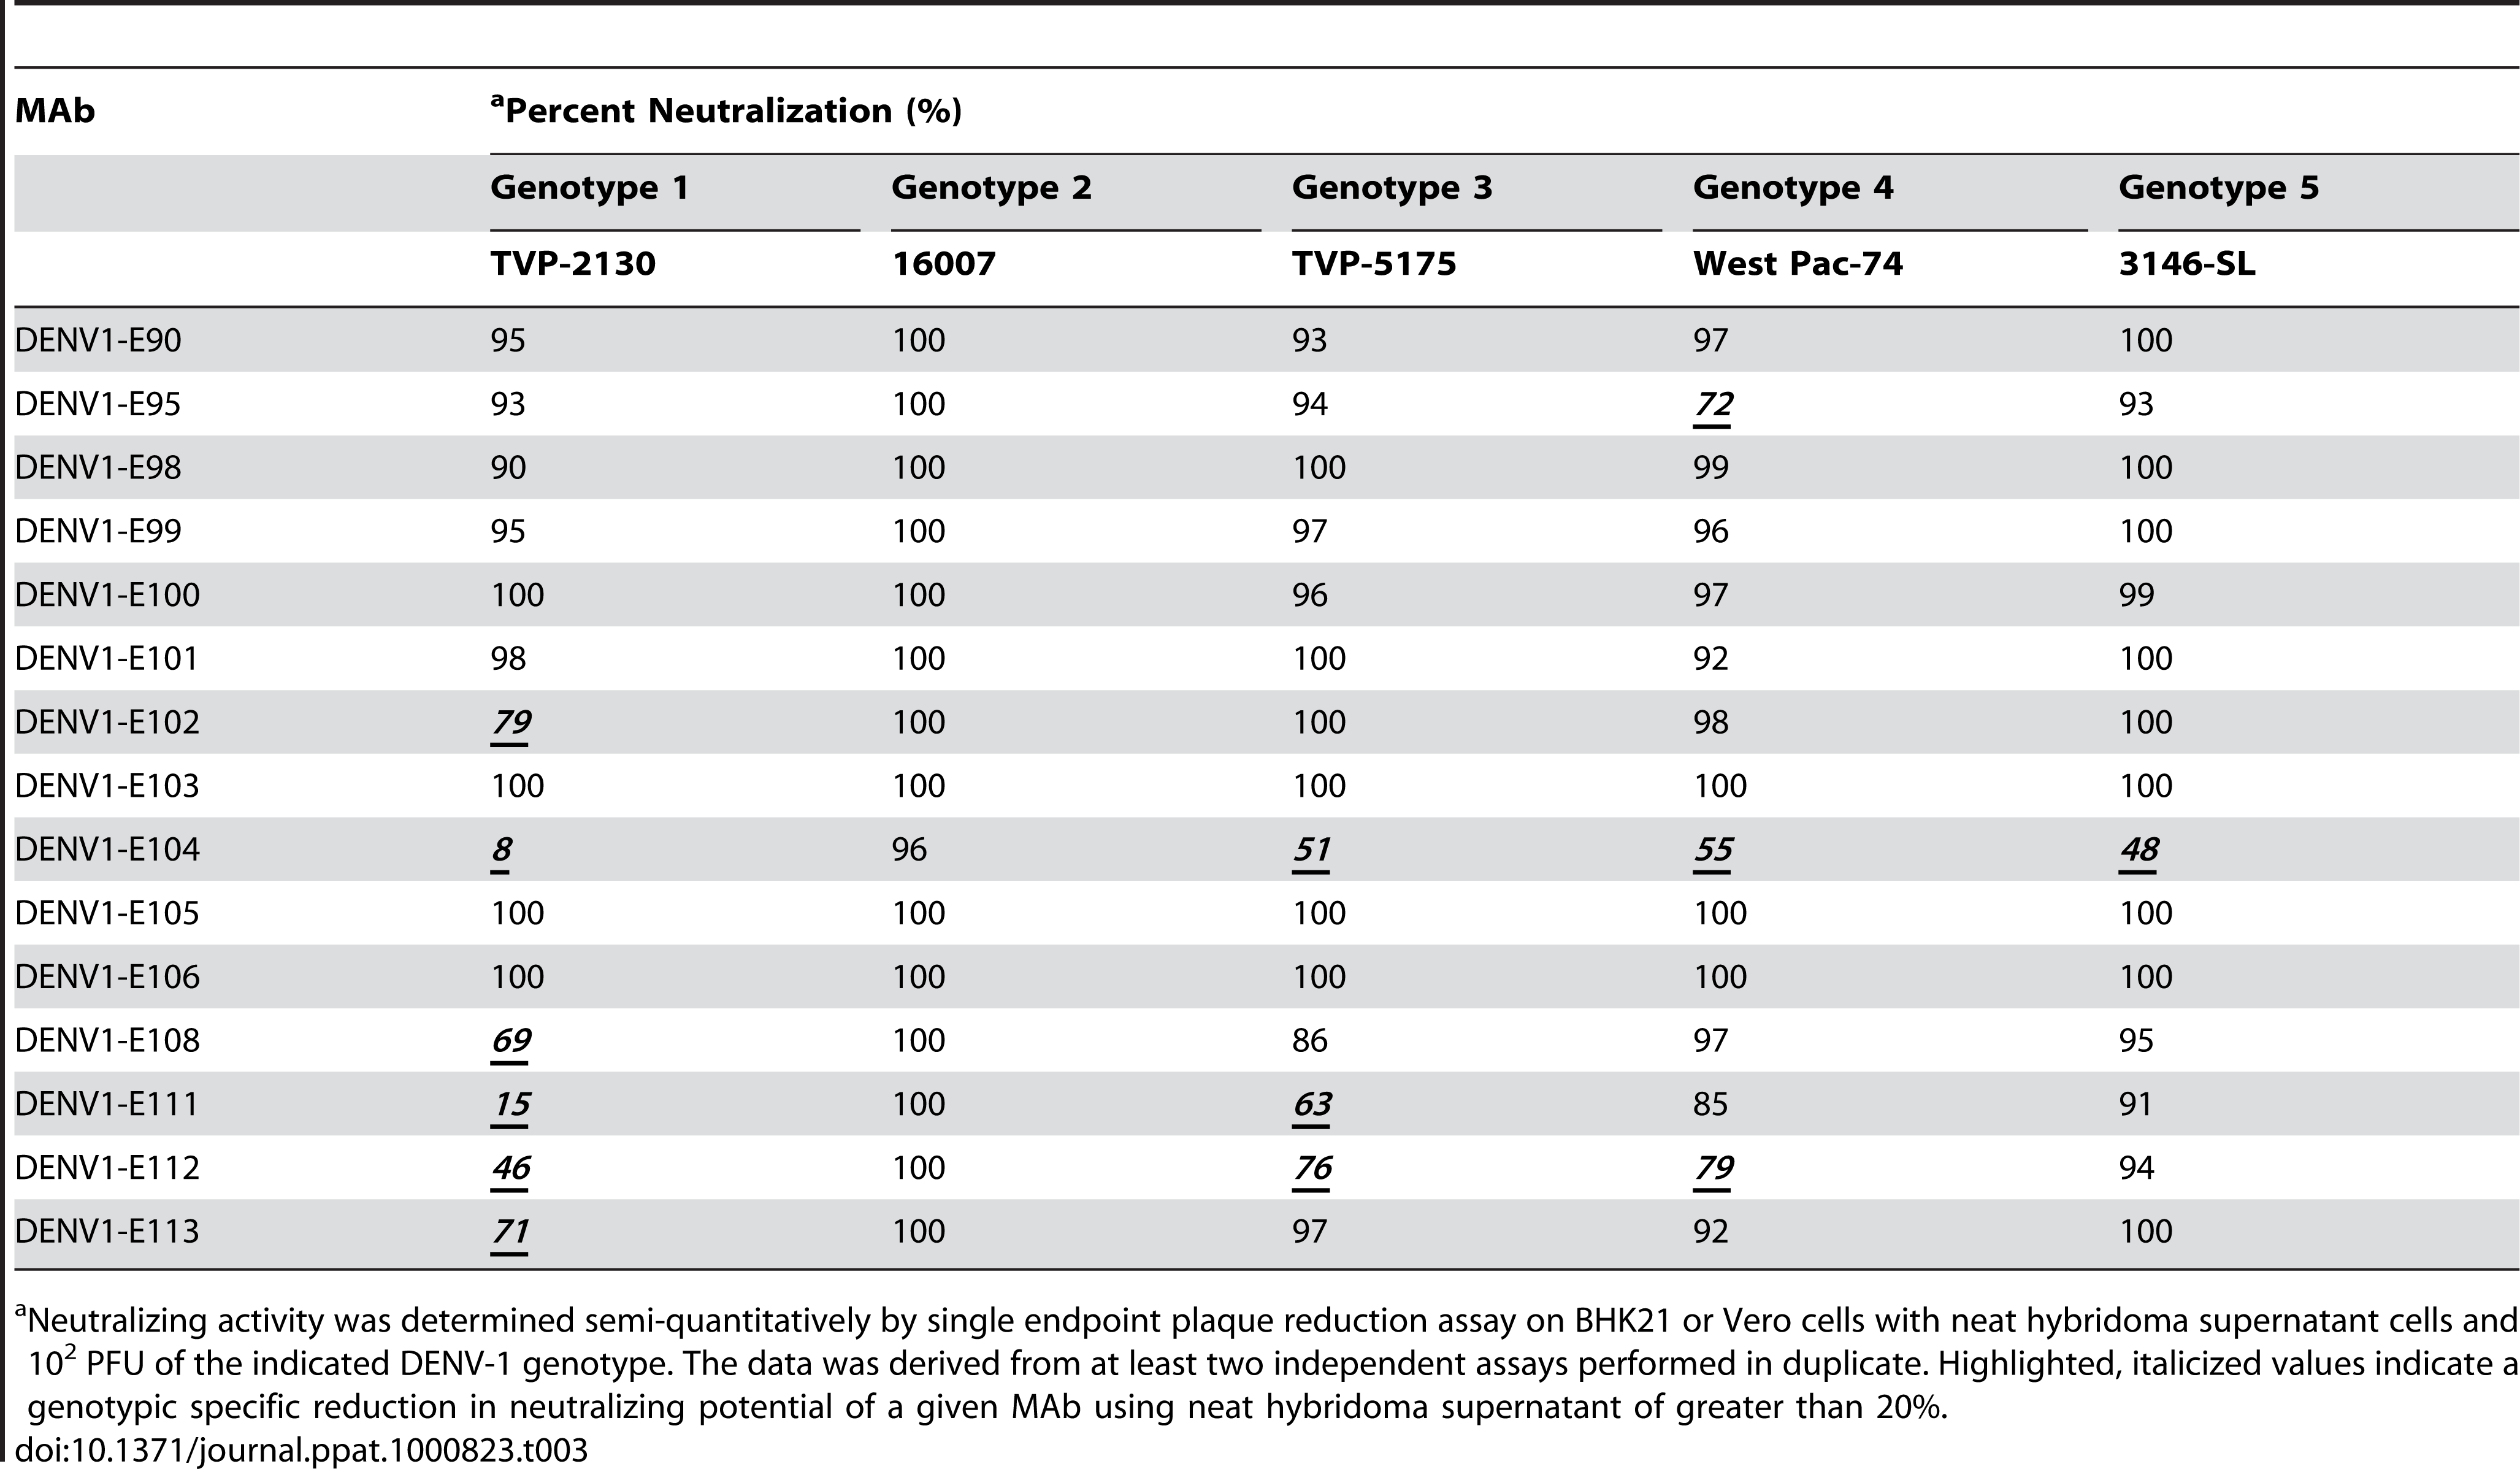 MAb neutralization of different DENV-1 genotypes.